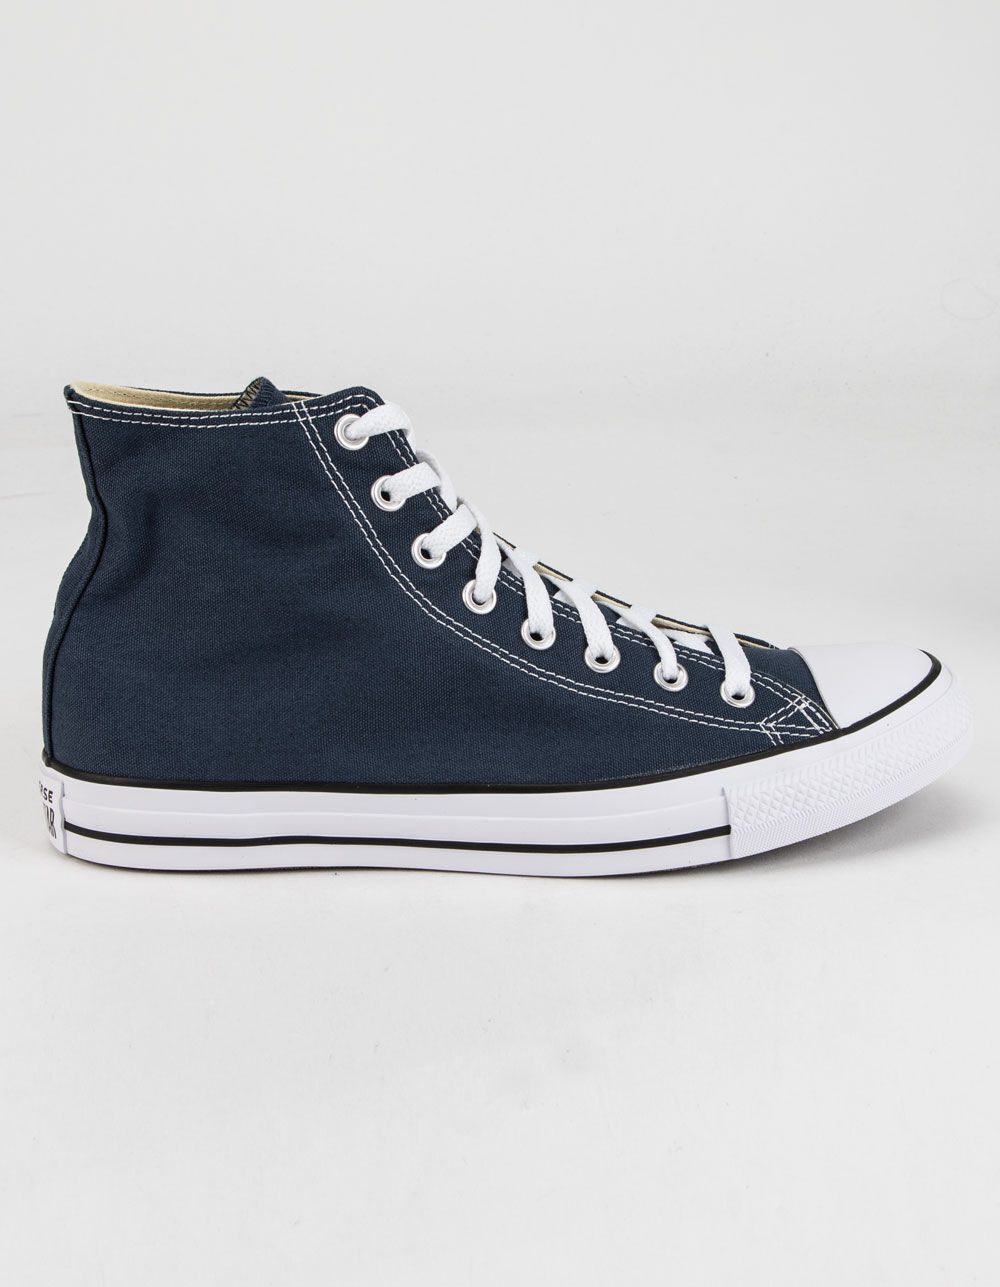 glance cube Posters  CONVERSE Chuck Taylor All Star Navy High Top Shoes | SportSpyder